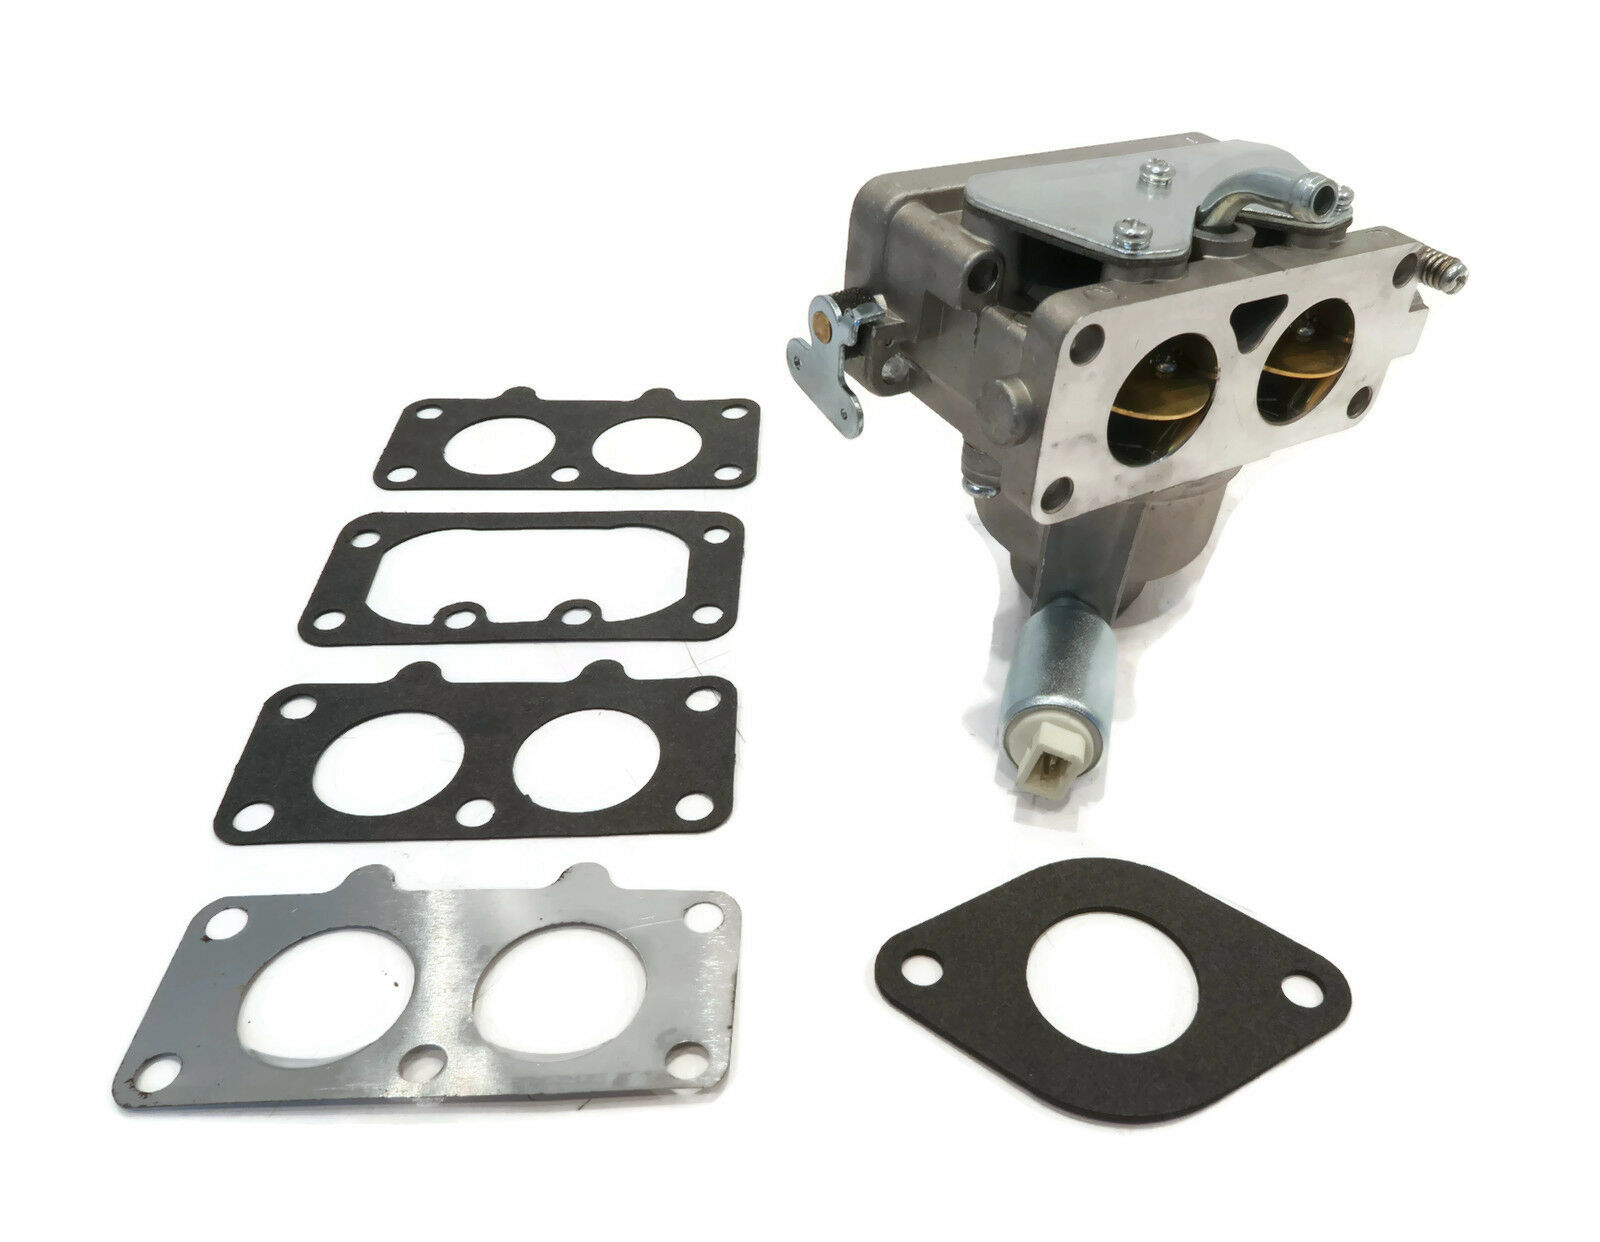 CARBURETOR w// GASKETS For Briggs Stratton 44S577 44S677 44S777 44S877 Engines